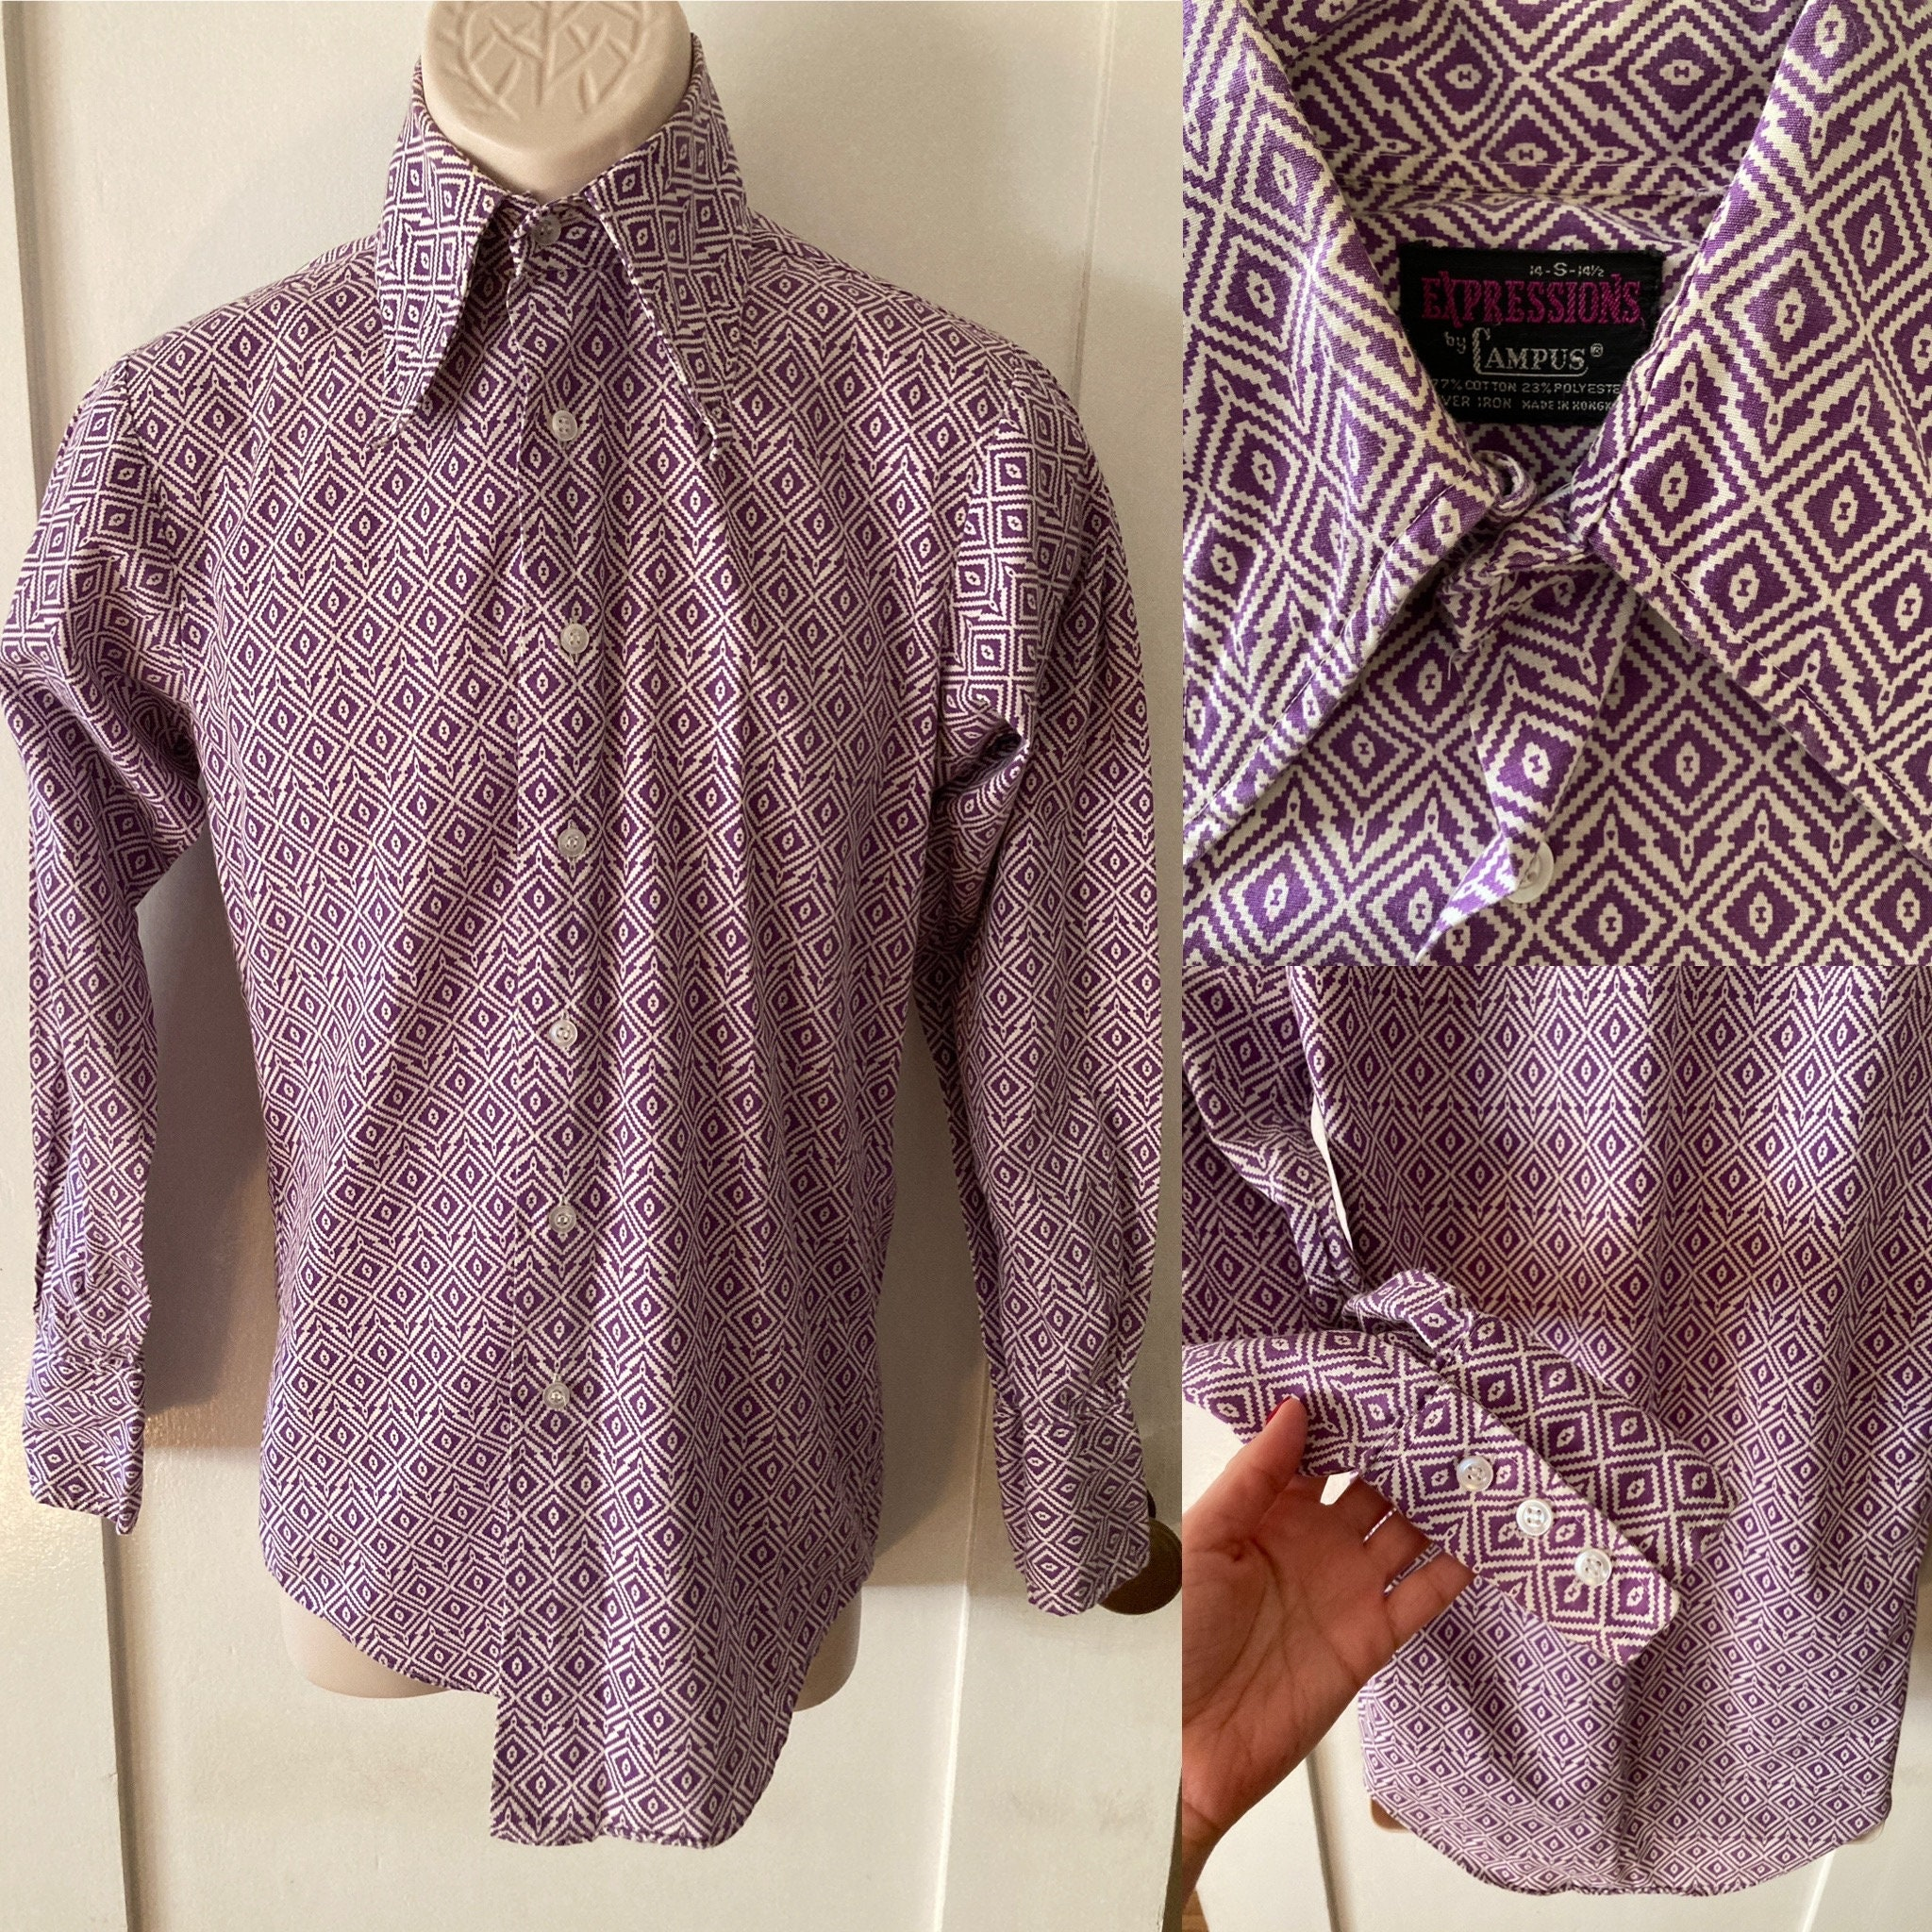 1970s Men's Shirt Styles – Vintage 70s Shirts for Guys 1960S 1970S Expressions By Campus-Purple  White Diamond Print Cotton Blend Button Up Shirt-Size S $37.80 AT vintagedancer.com